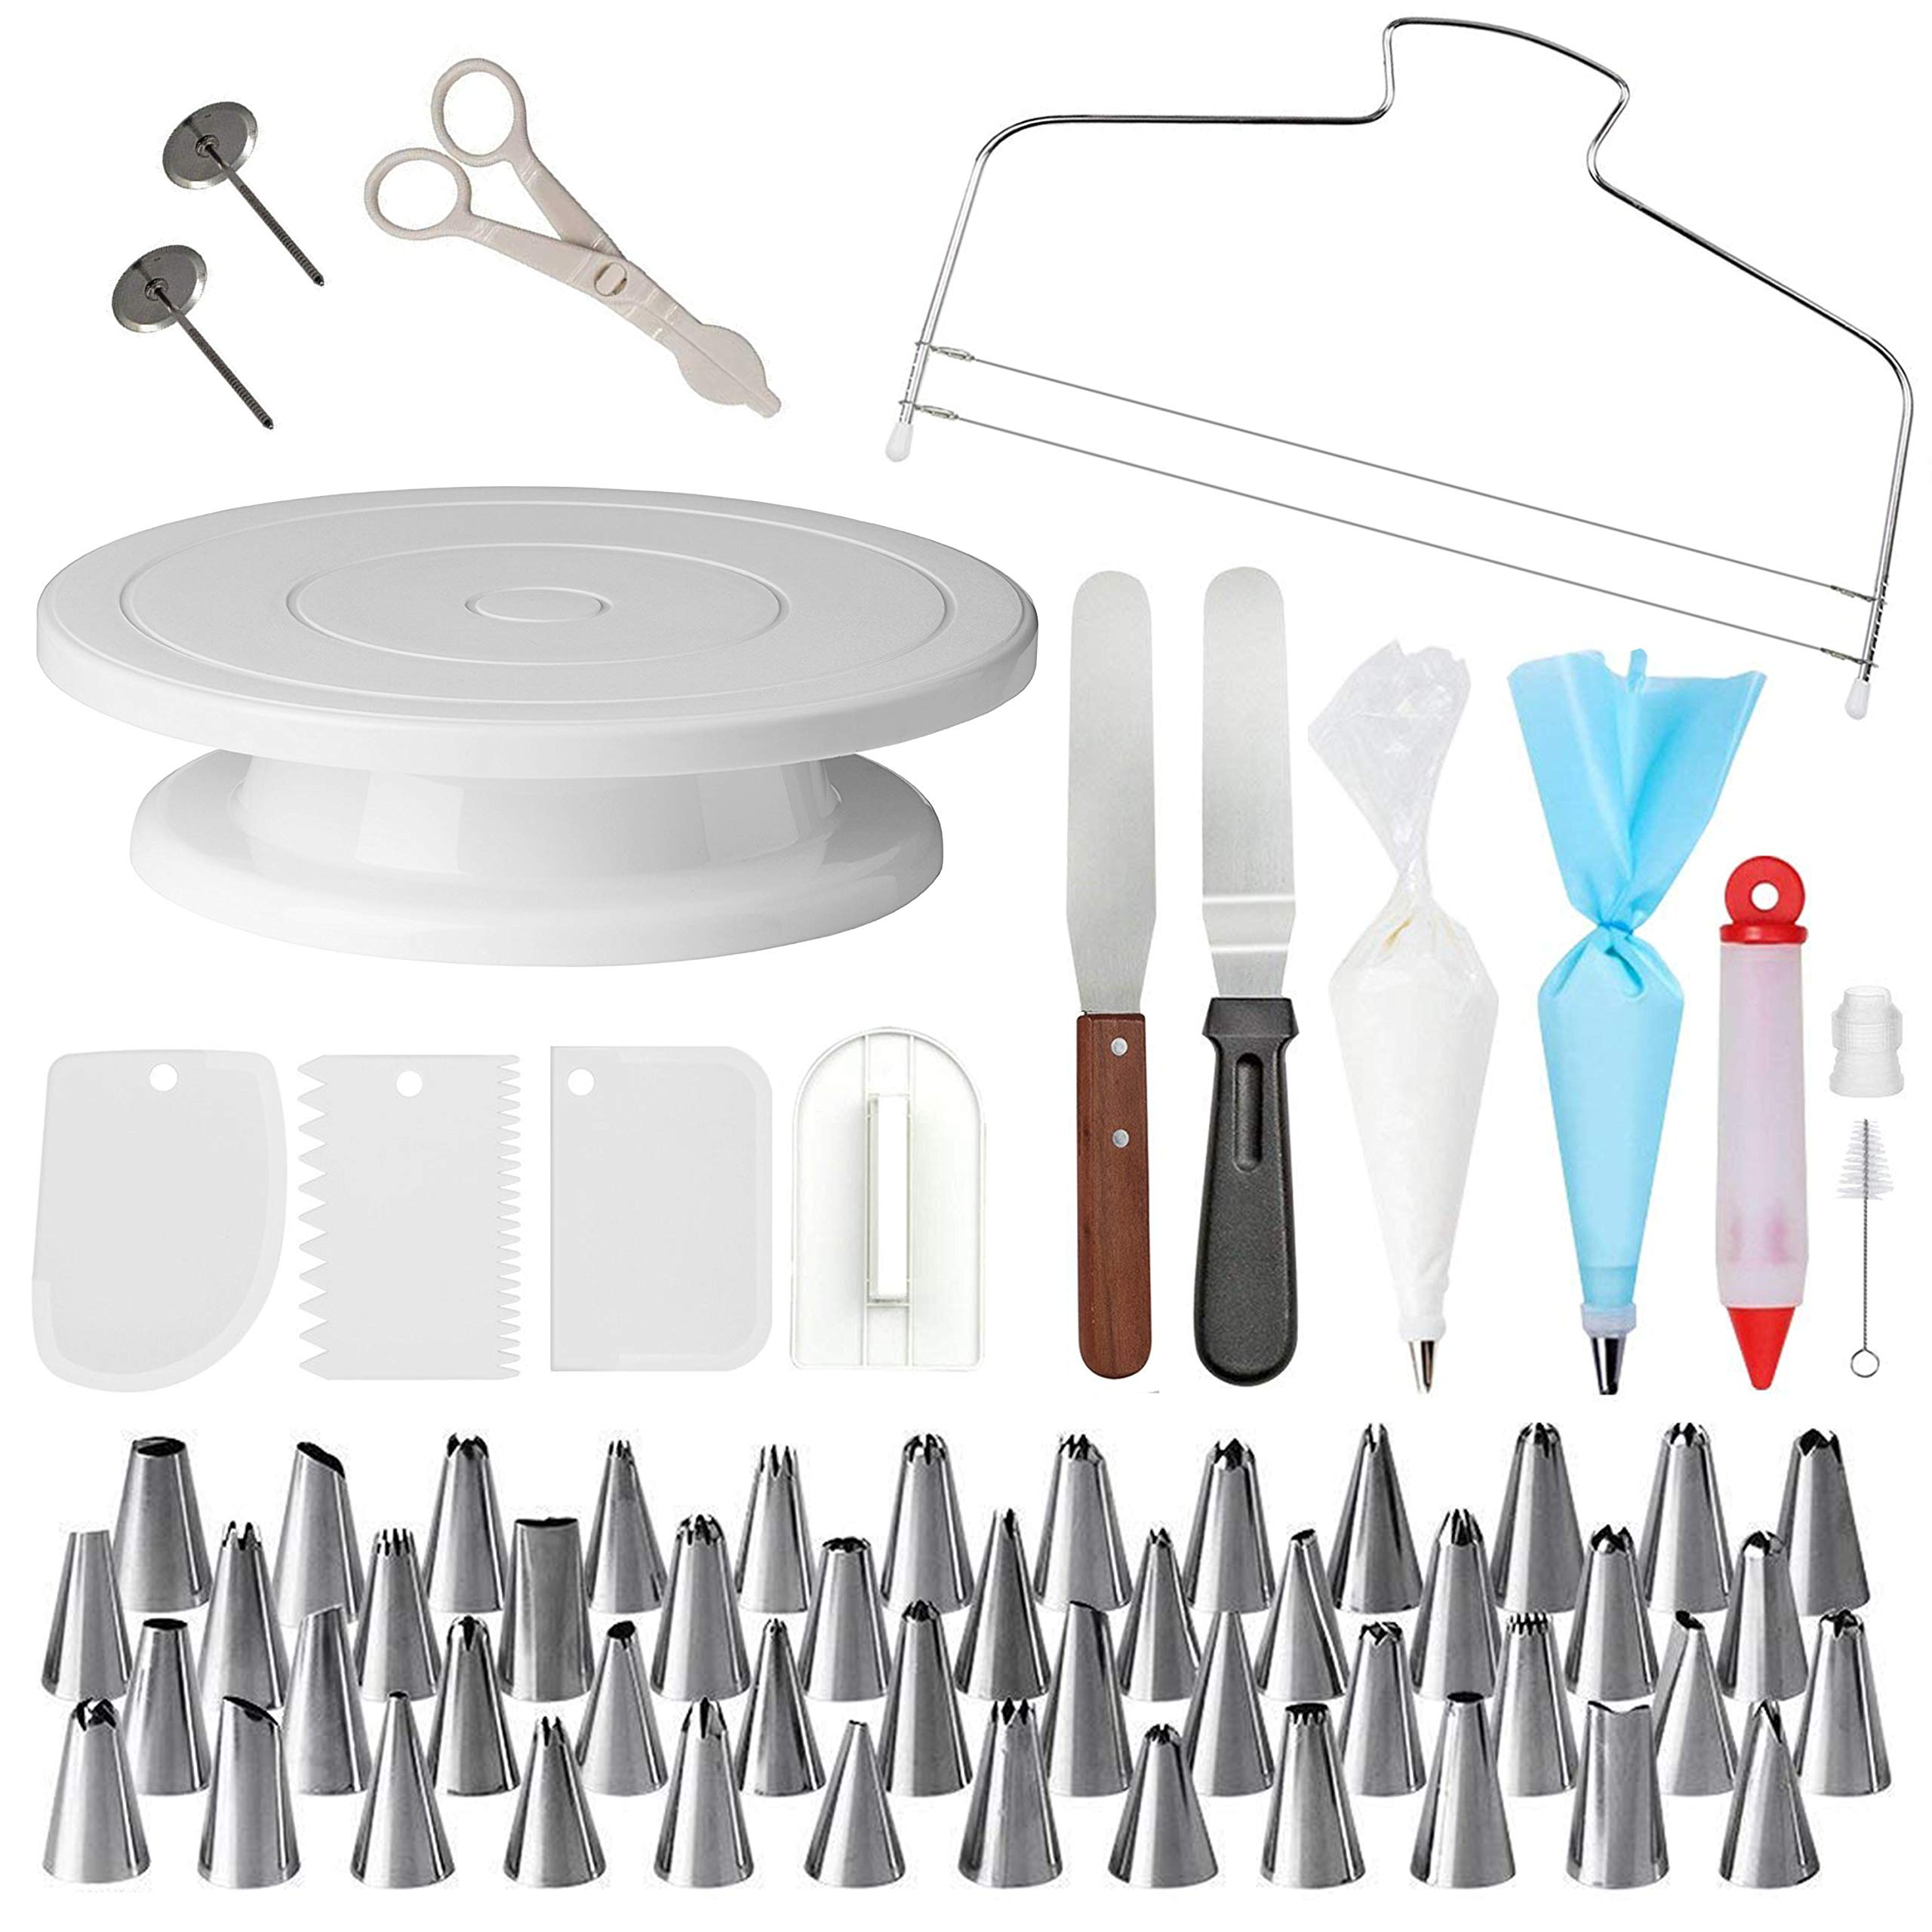 Cake Decorating Supplies with Cake Turntable - Extended 73pcs Baking Supplies - Baking Kit - Baking Set Includes: Piping Bags and Tips Decorating Turntable other Baking Tools - New Cake Decorating Kit